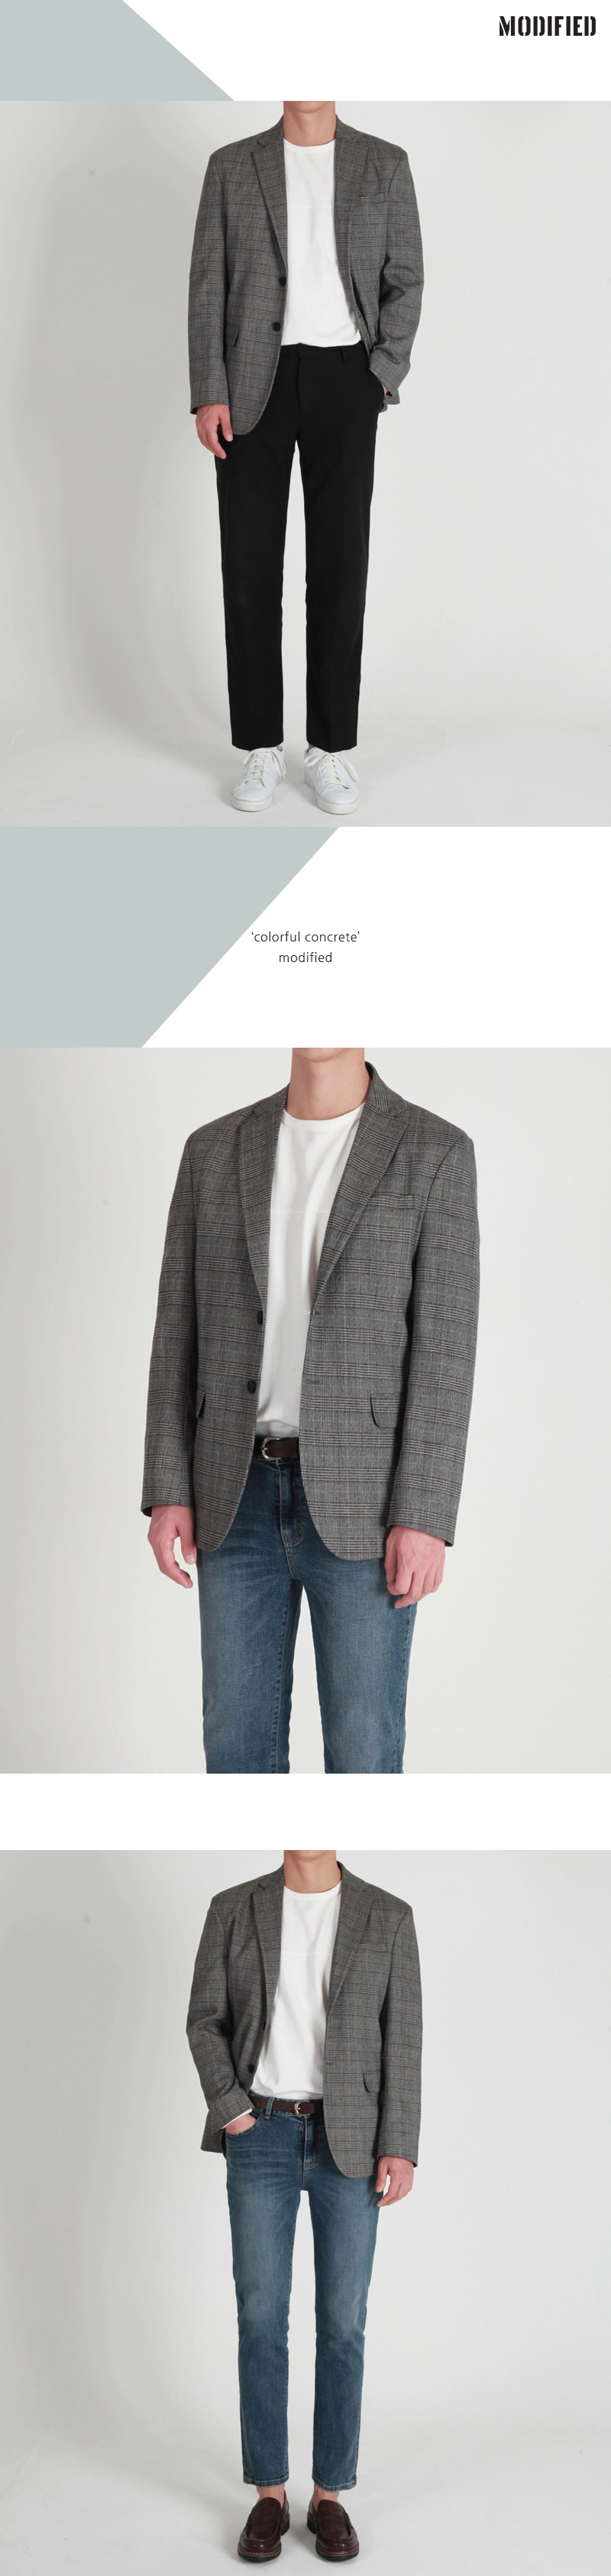 모디파이드(MODIFIED) M#1665 glen check single blazer